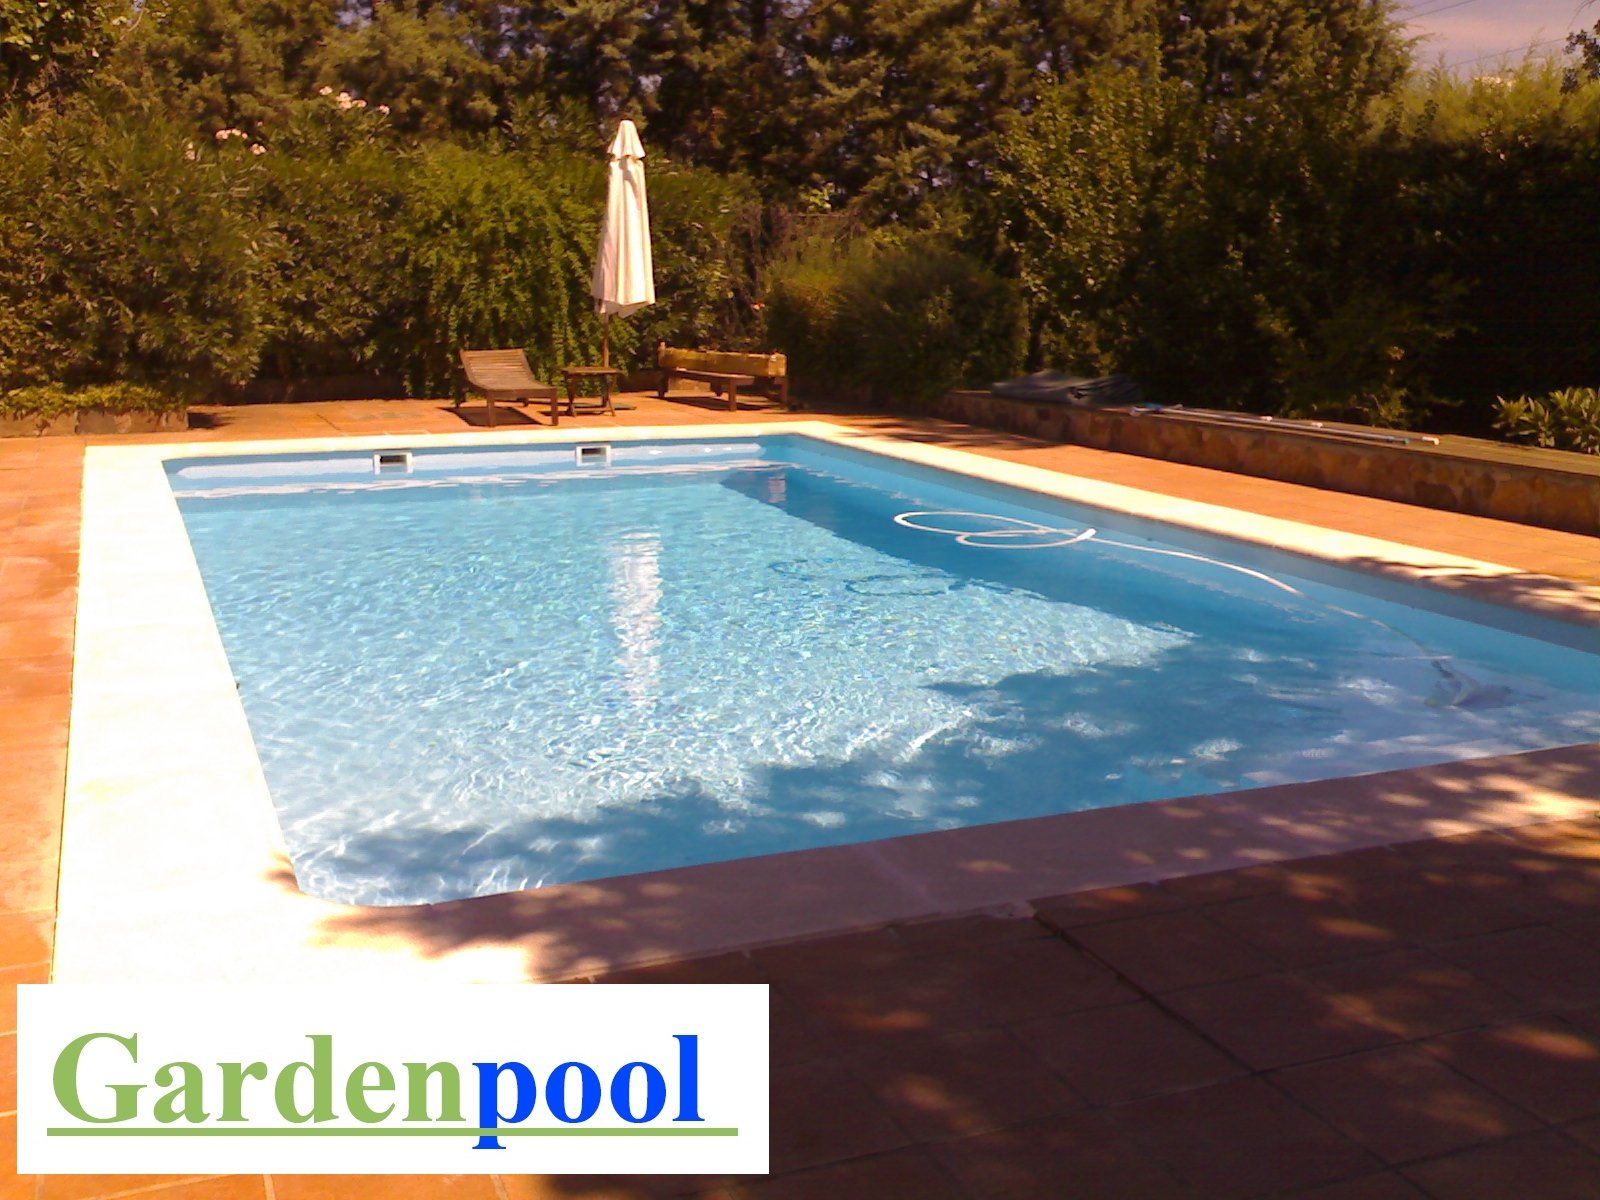 Impermeabilizacion de piscinas en madrid gardenpool for Piscina ajalvir